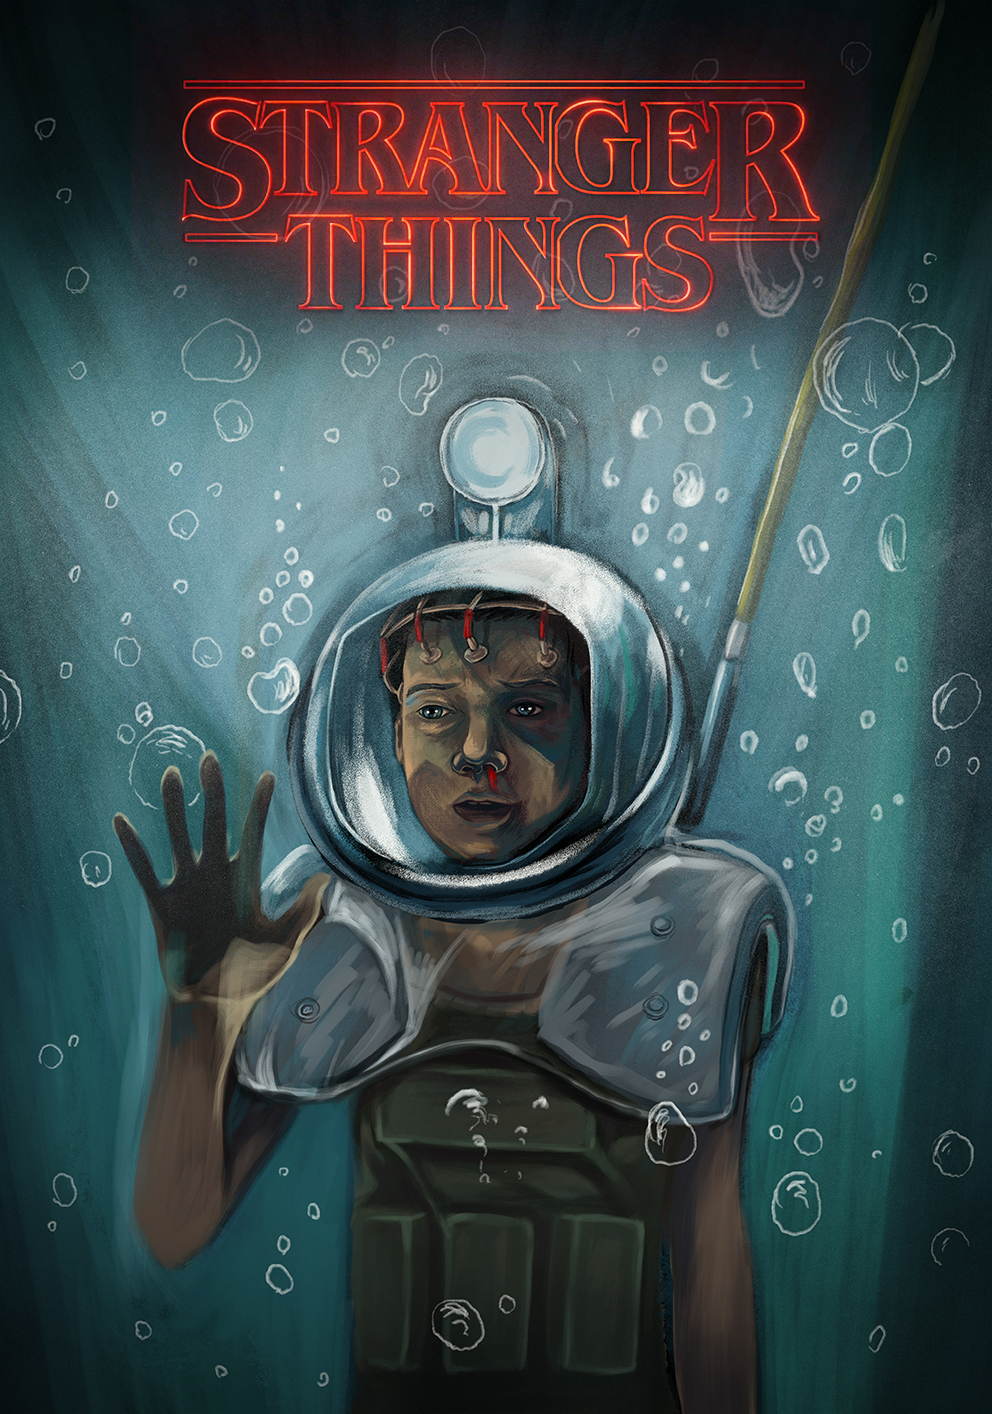 Stranger Things fan art is a gorgeous realm of '80s